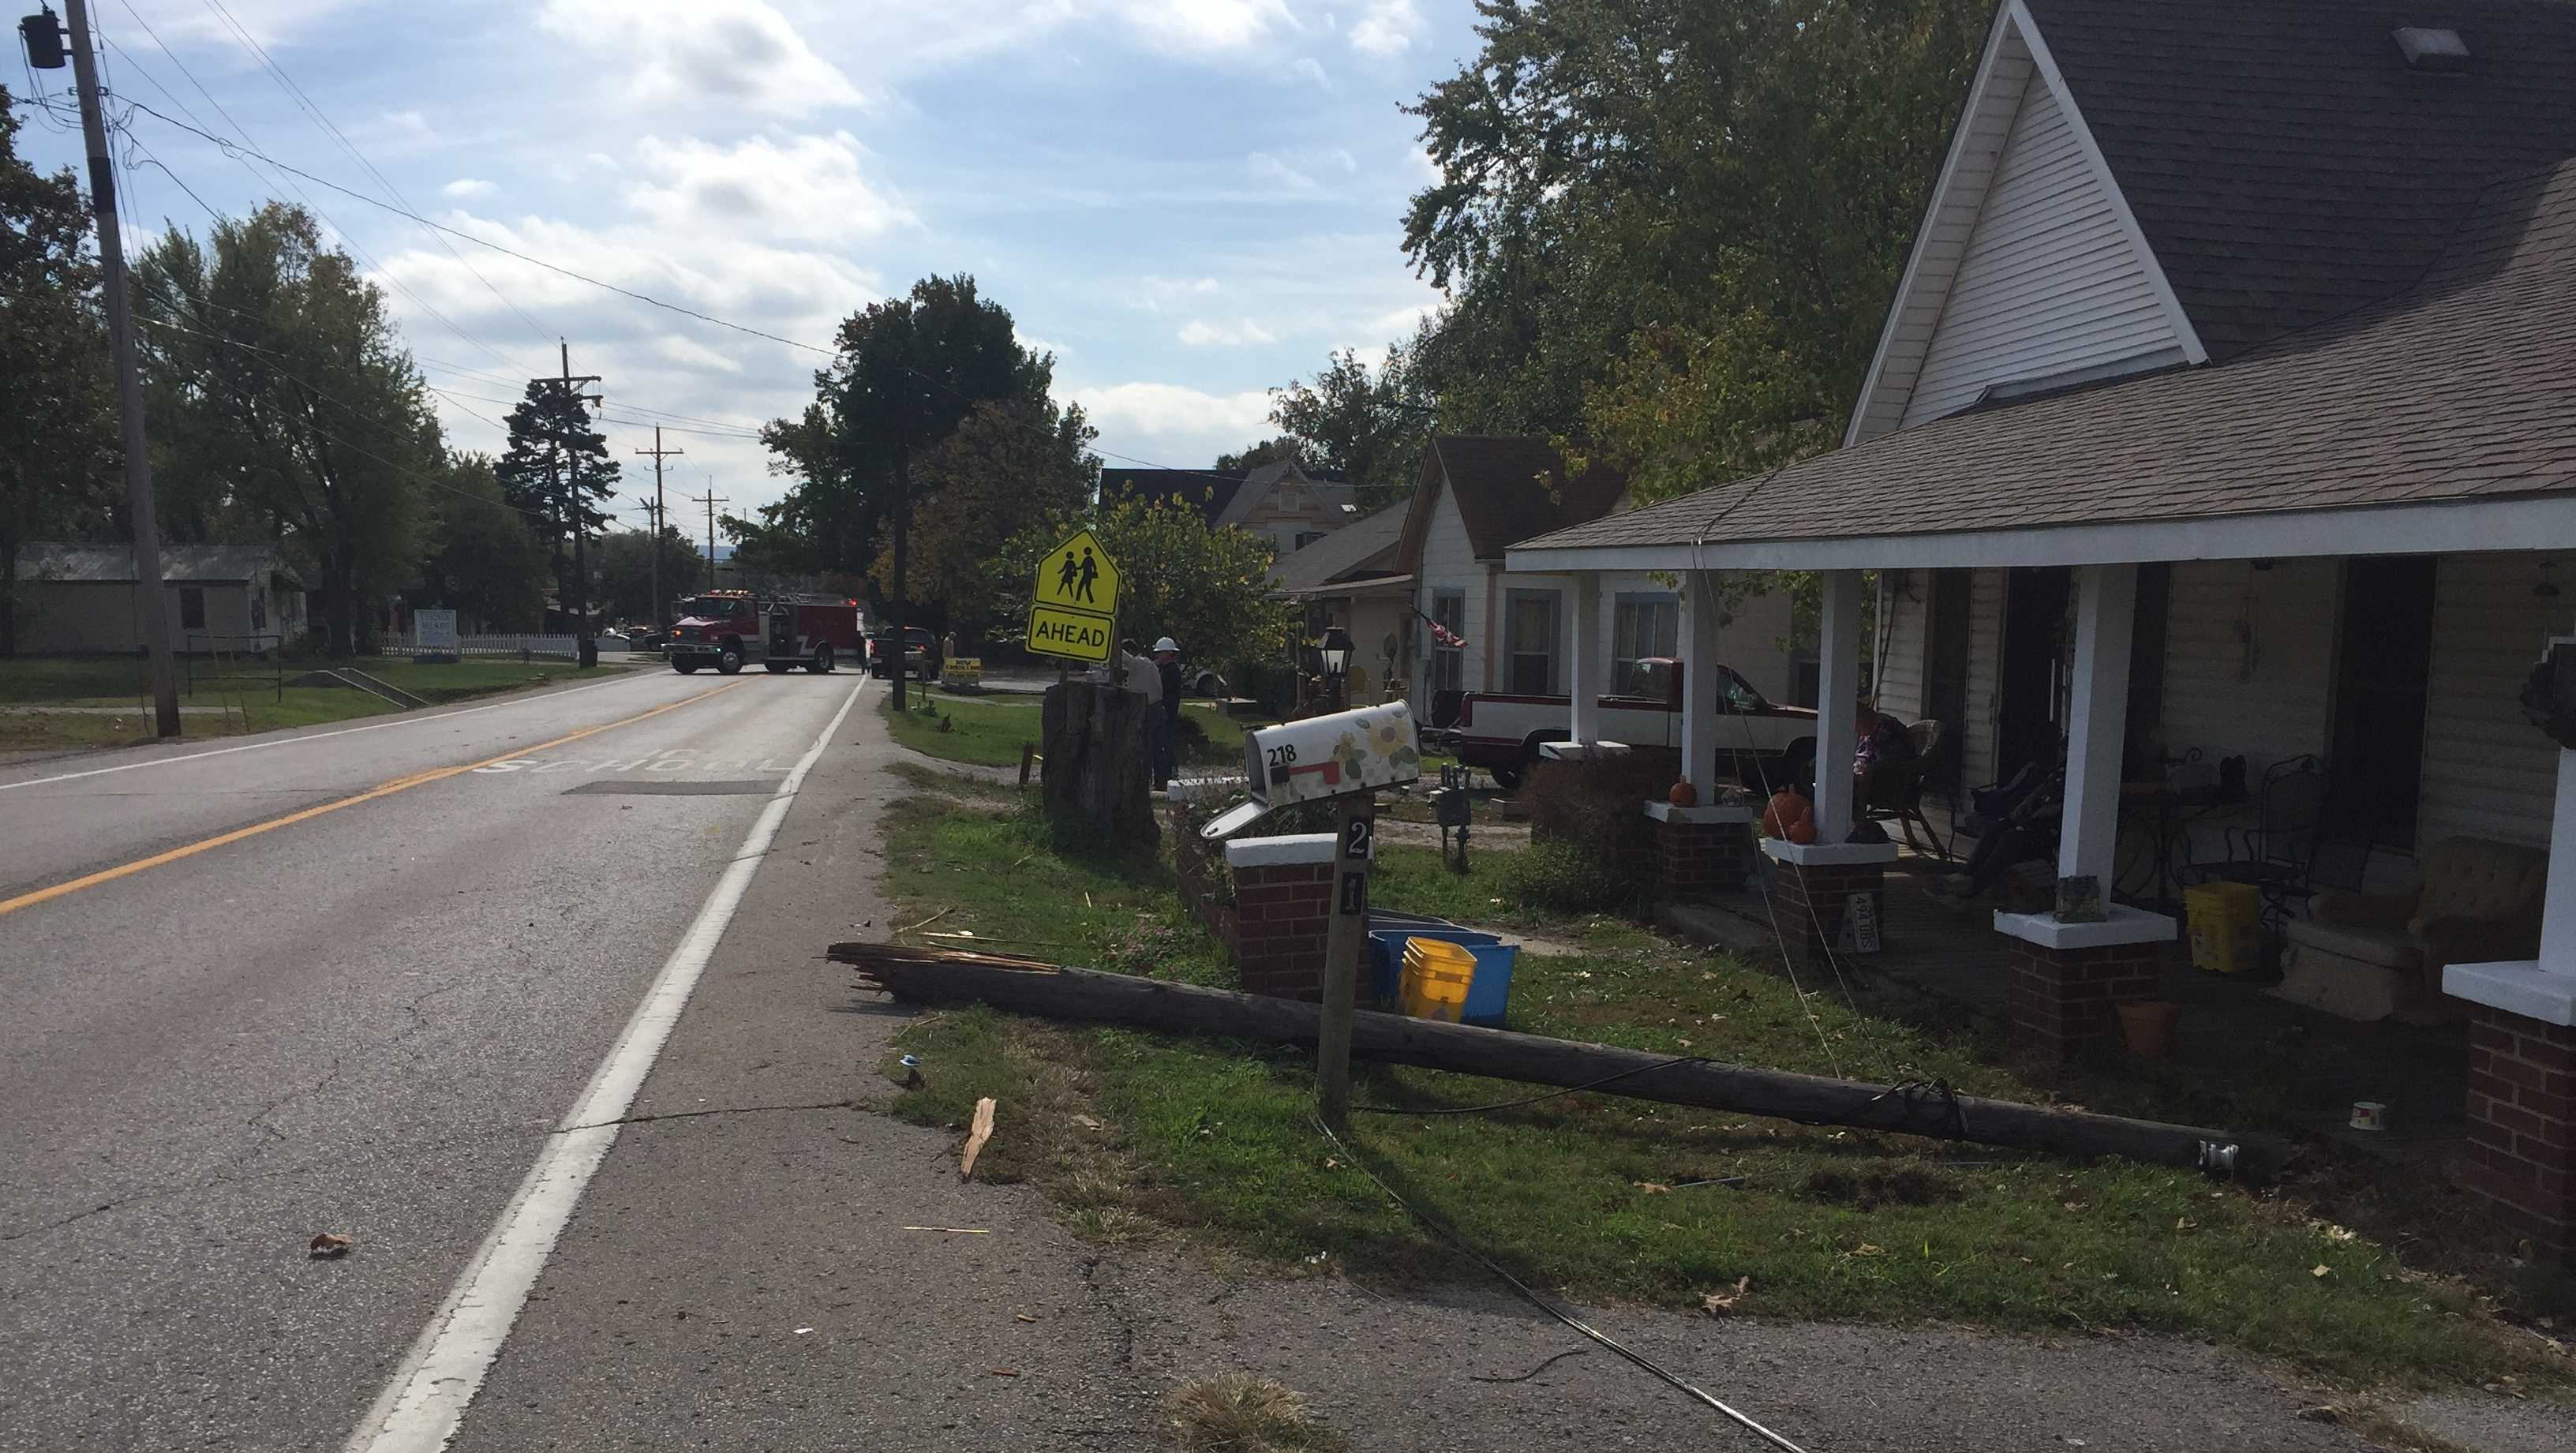 Location where a dump truck hit a power pole on Pittman St. in Prairie Grove